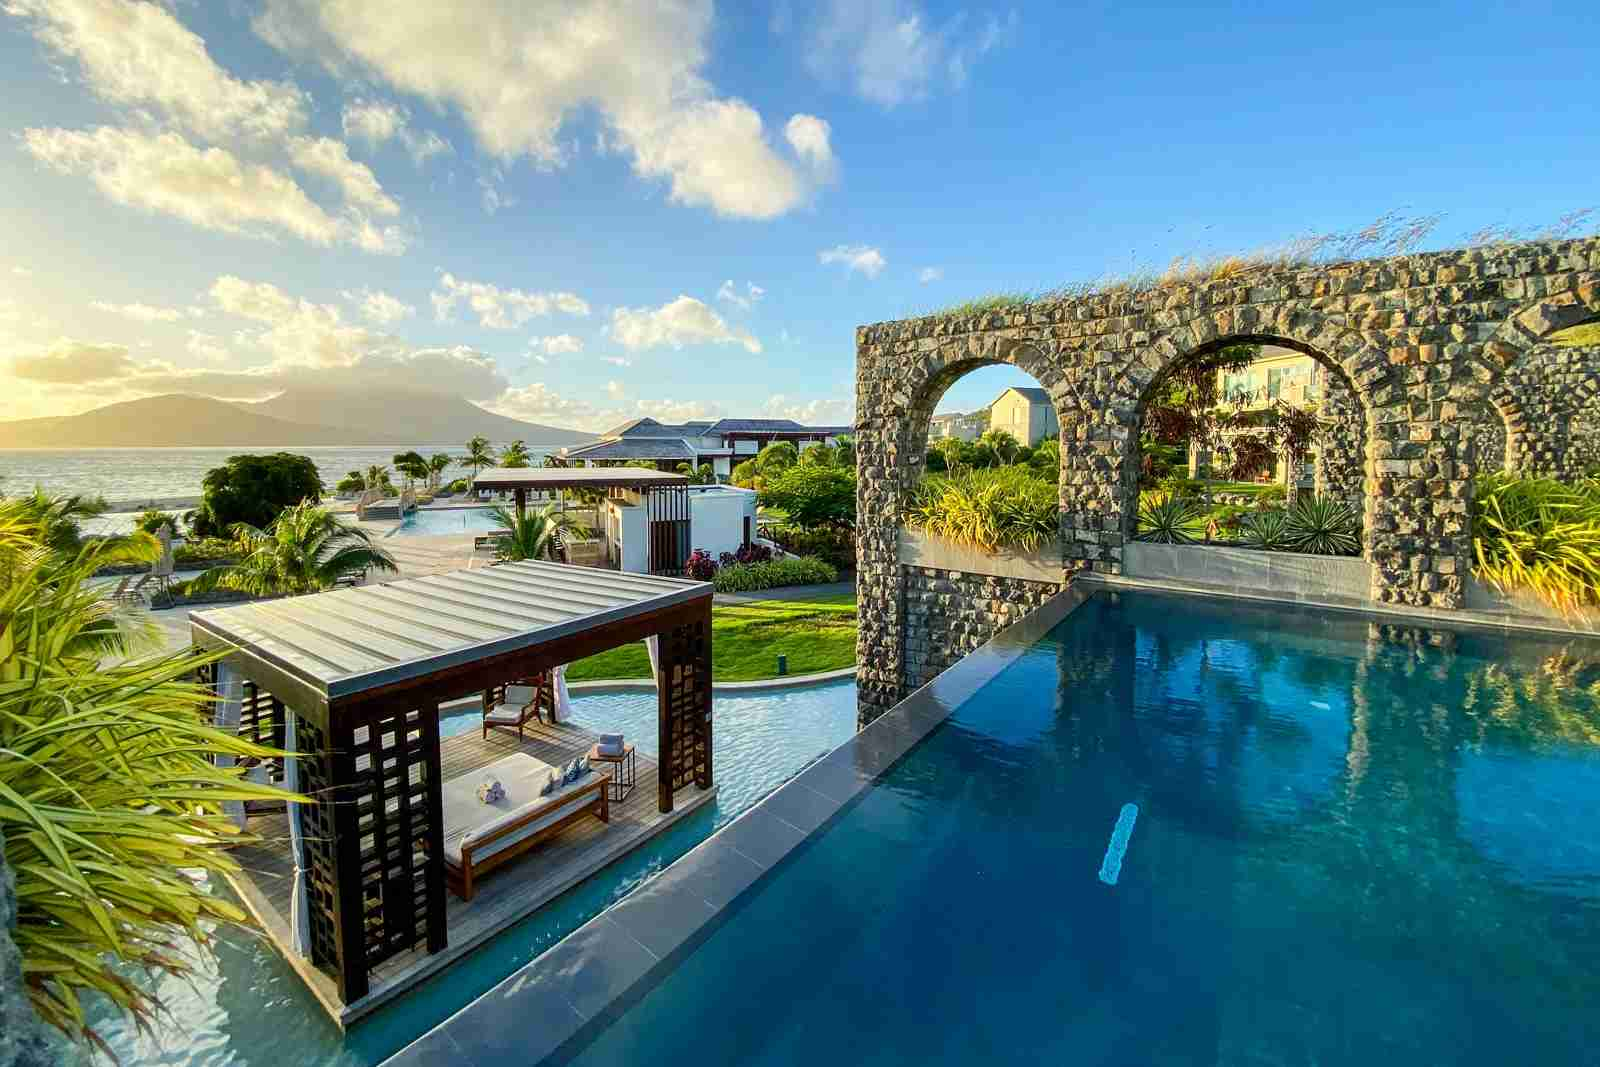 Park Hyatt St. Kitts (Photo by Zach Griff/The Points Guy)